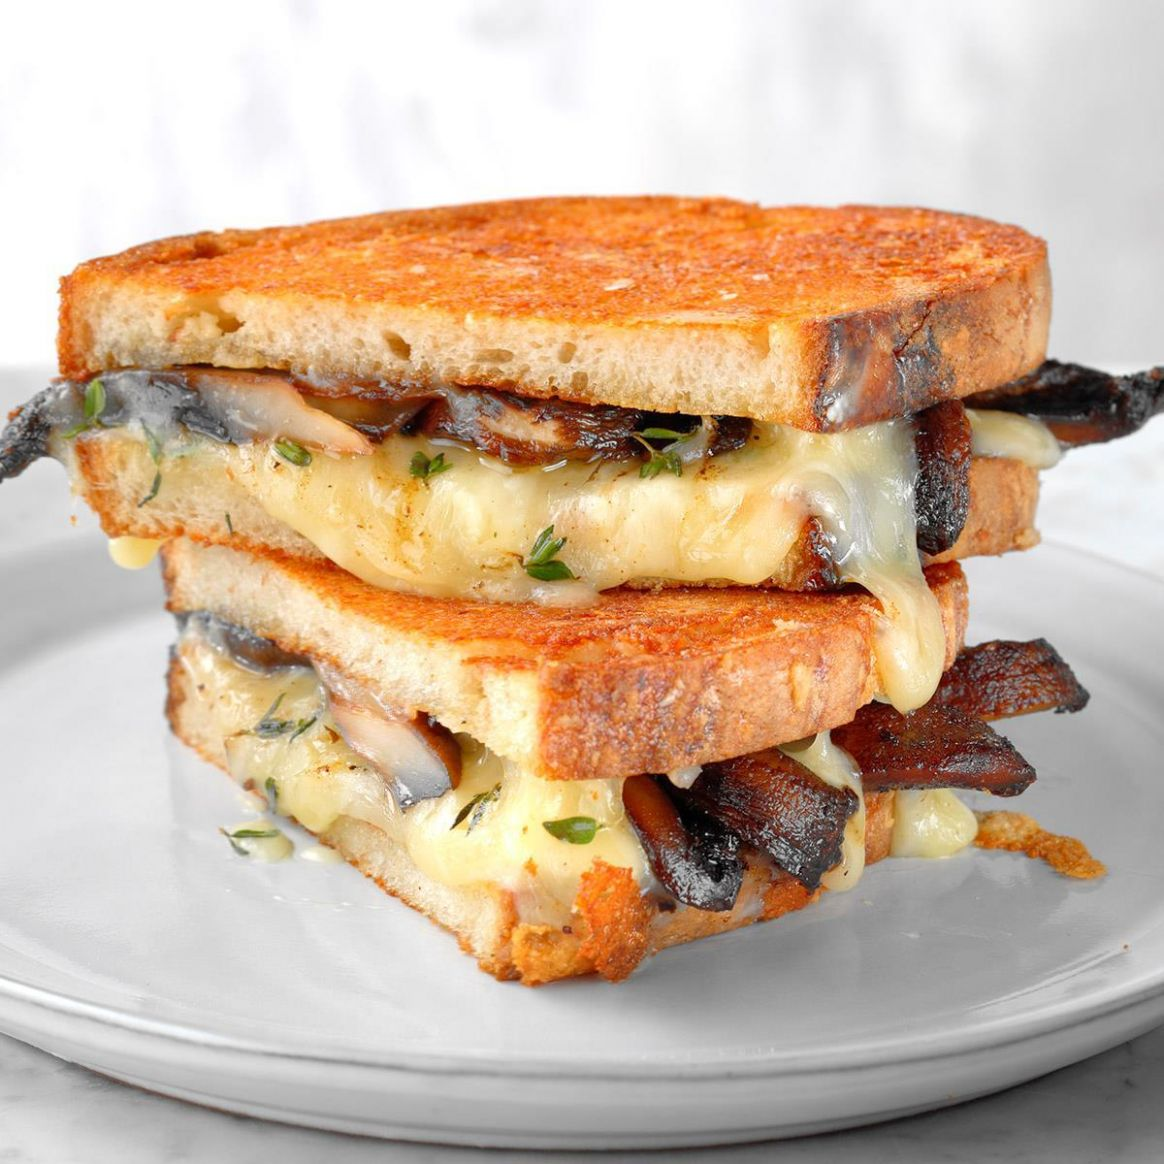 Grilled Cheese and Mushroom Sandwich - Sandwich Recipes To Go